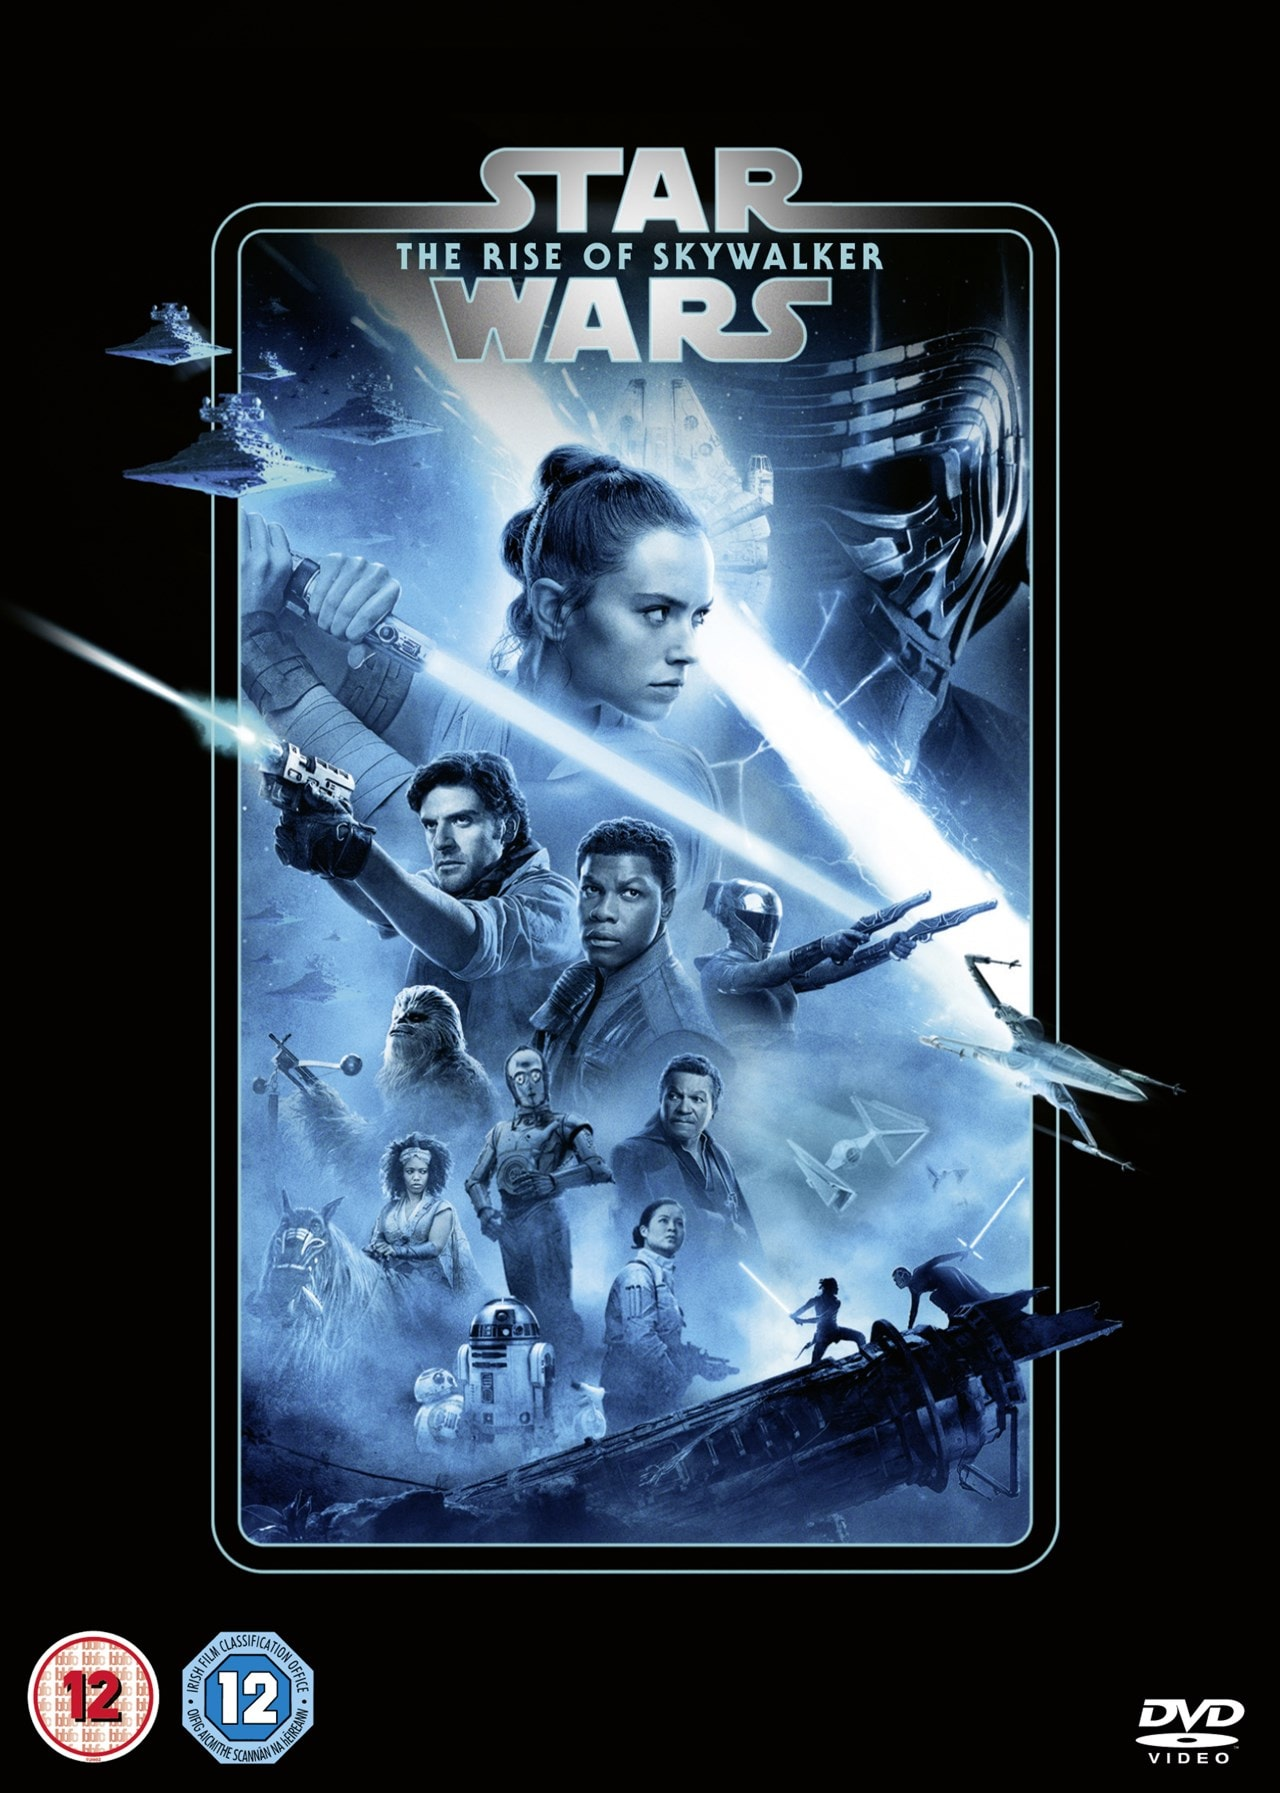 Star Wars: The Rise of Skywalker - 1